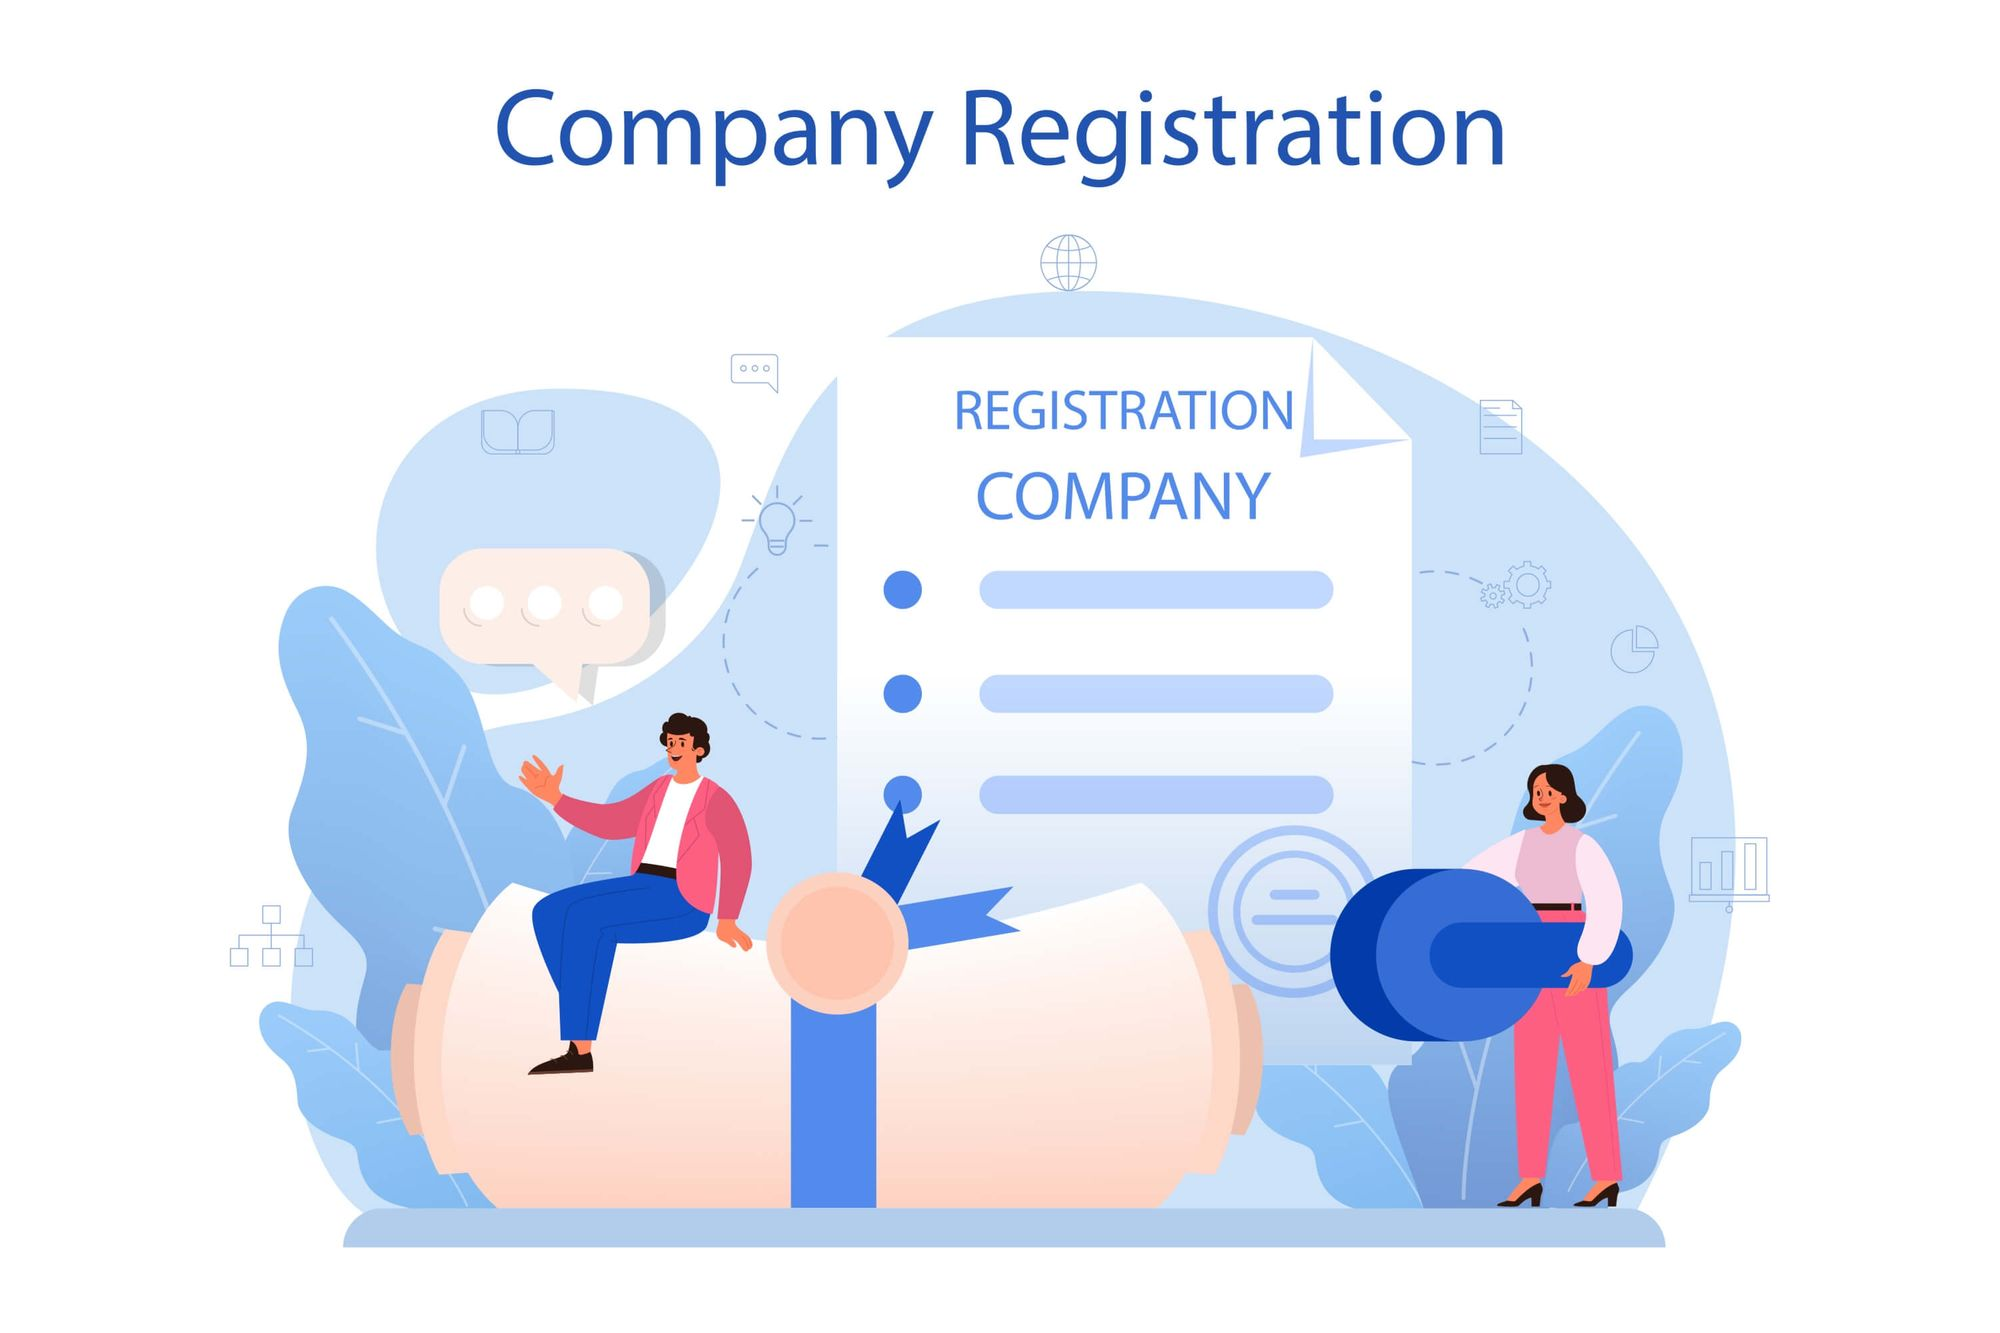 How to find a company registration number online?